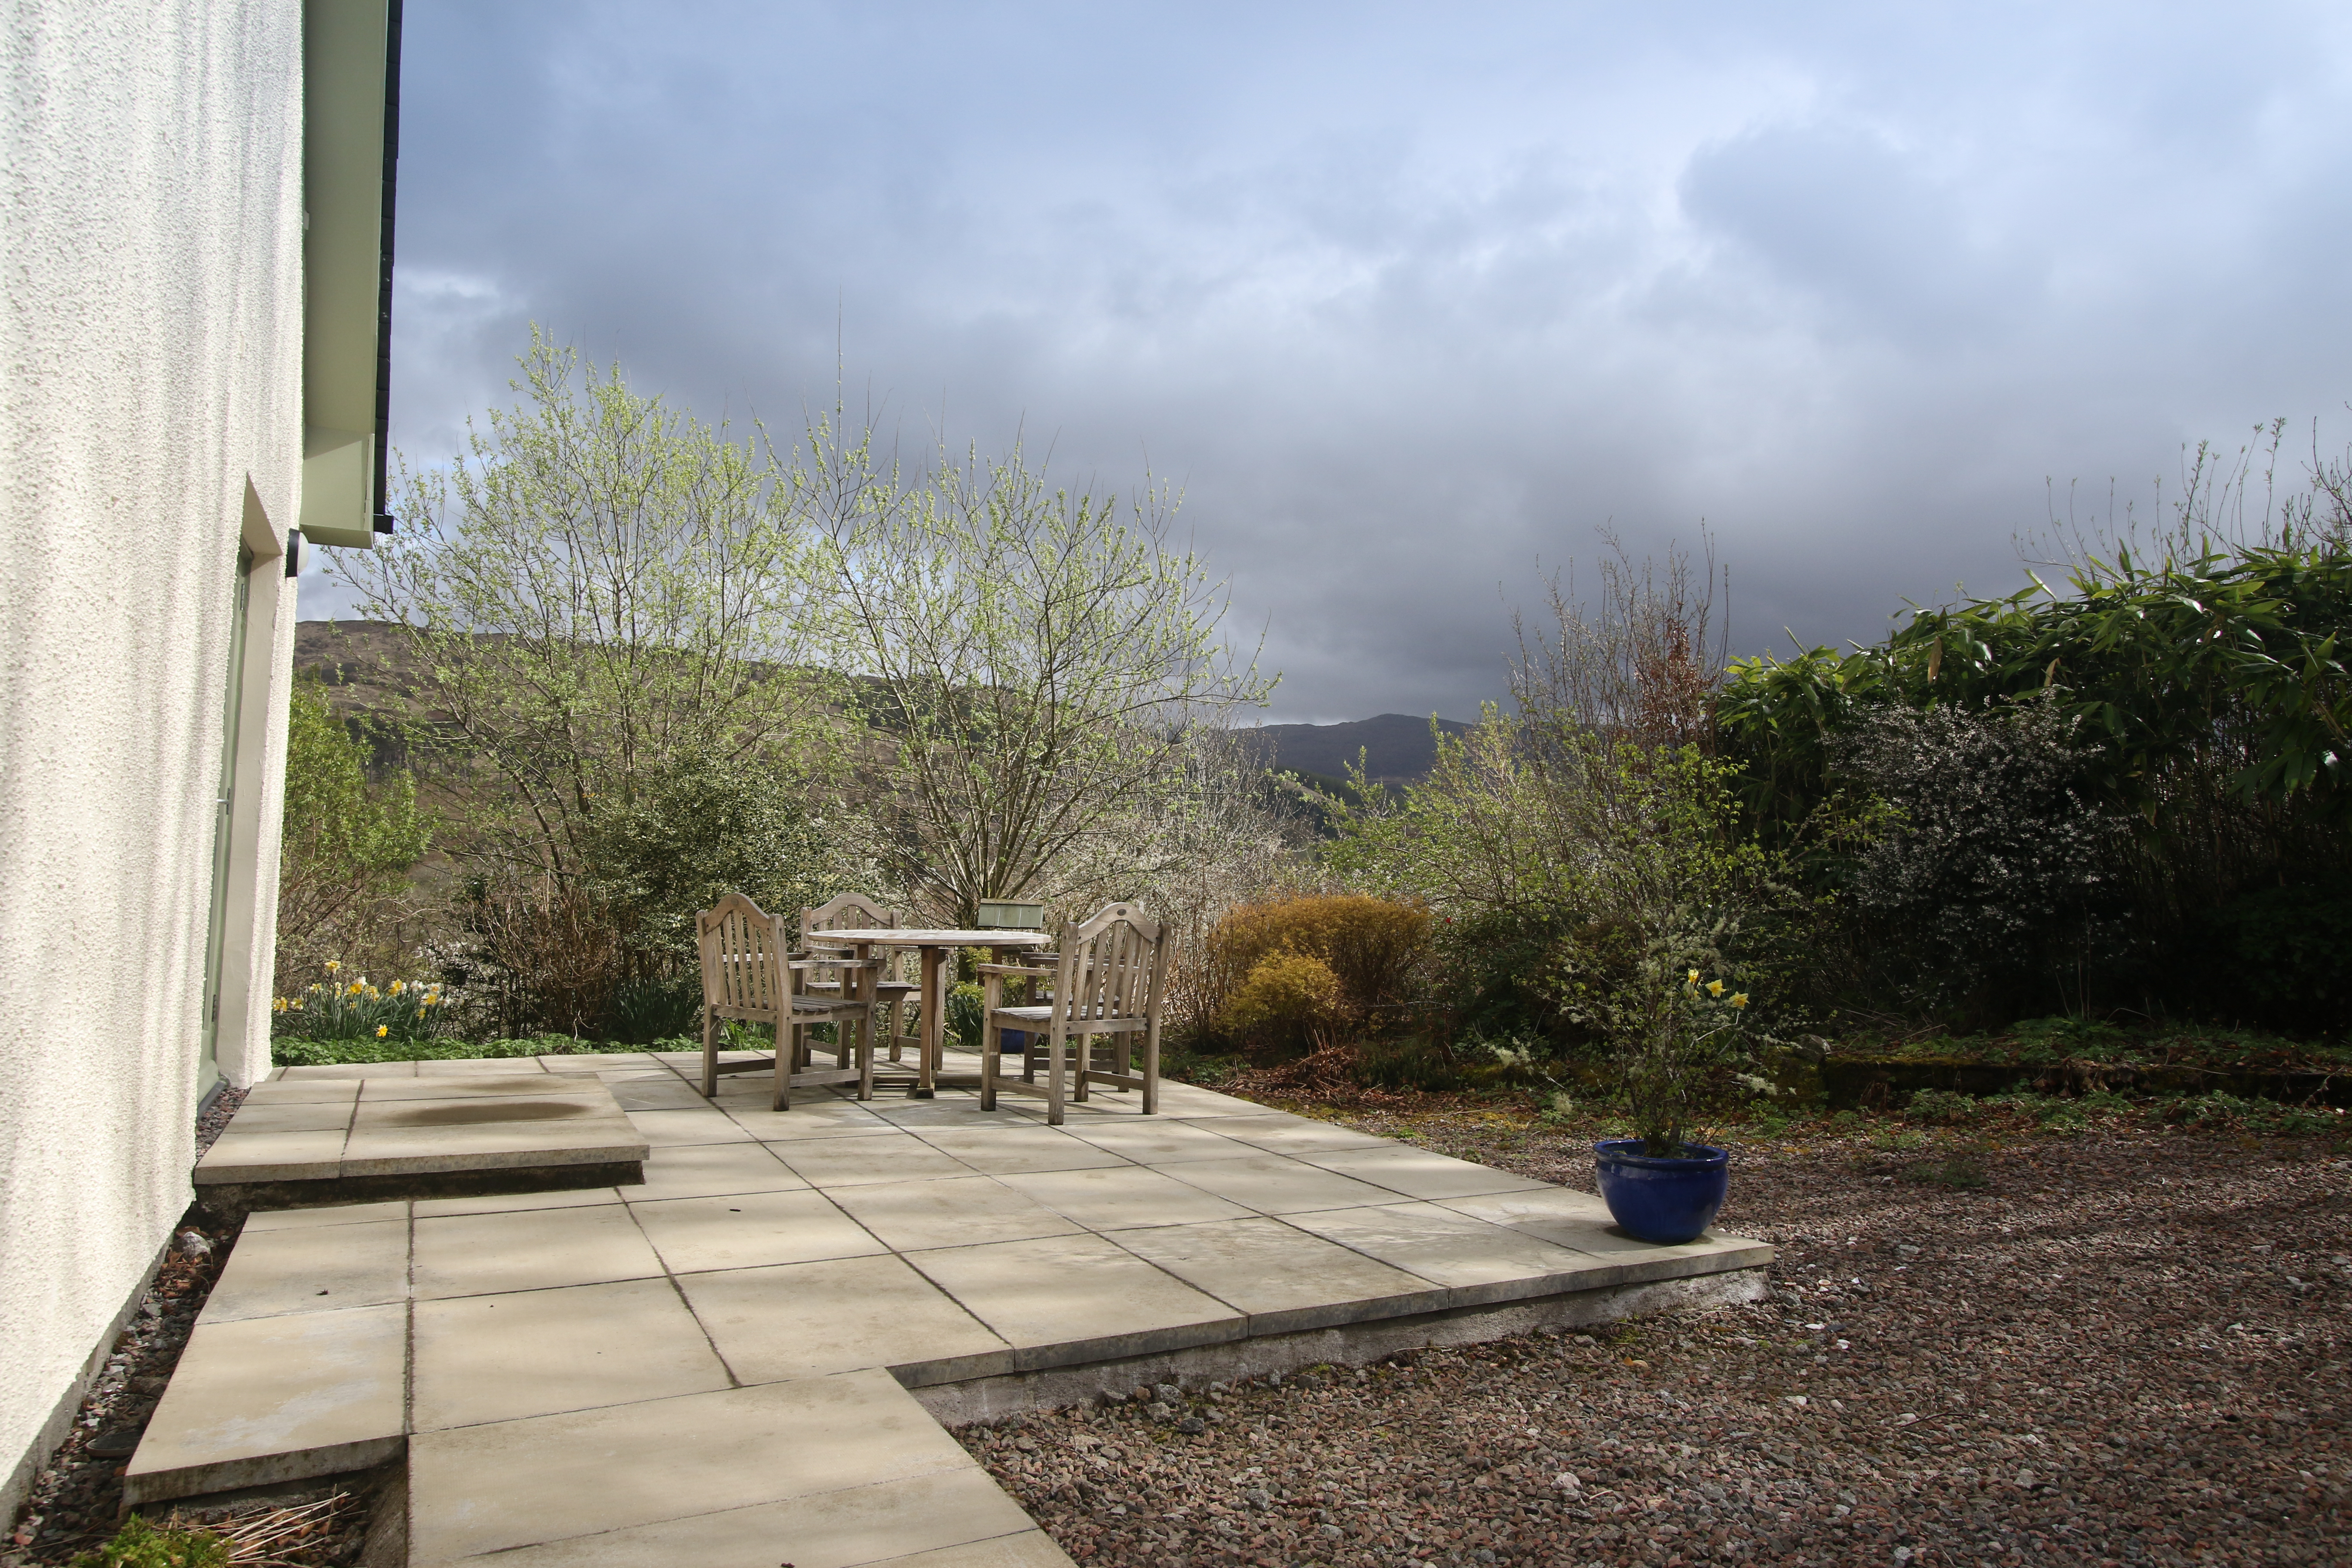 The patio and gardens